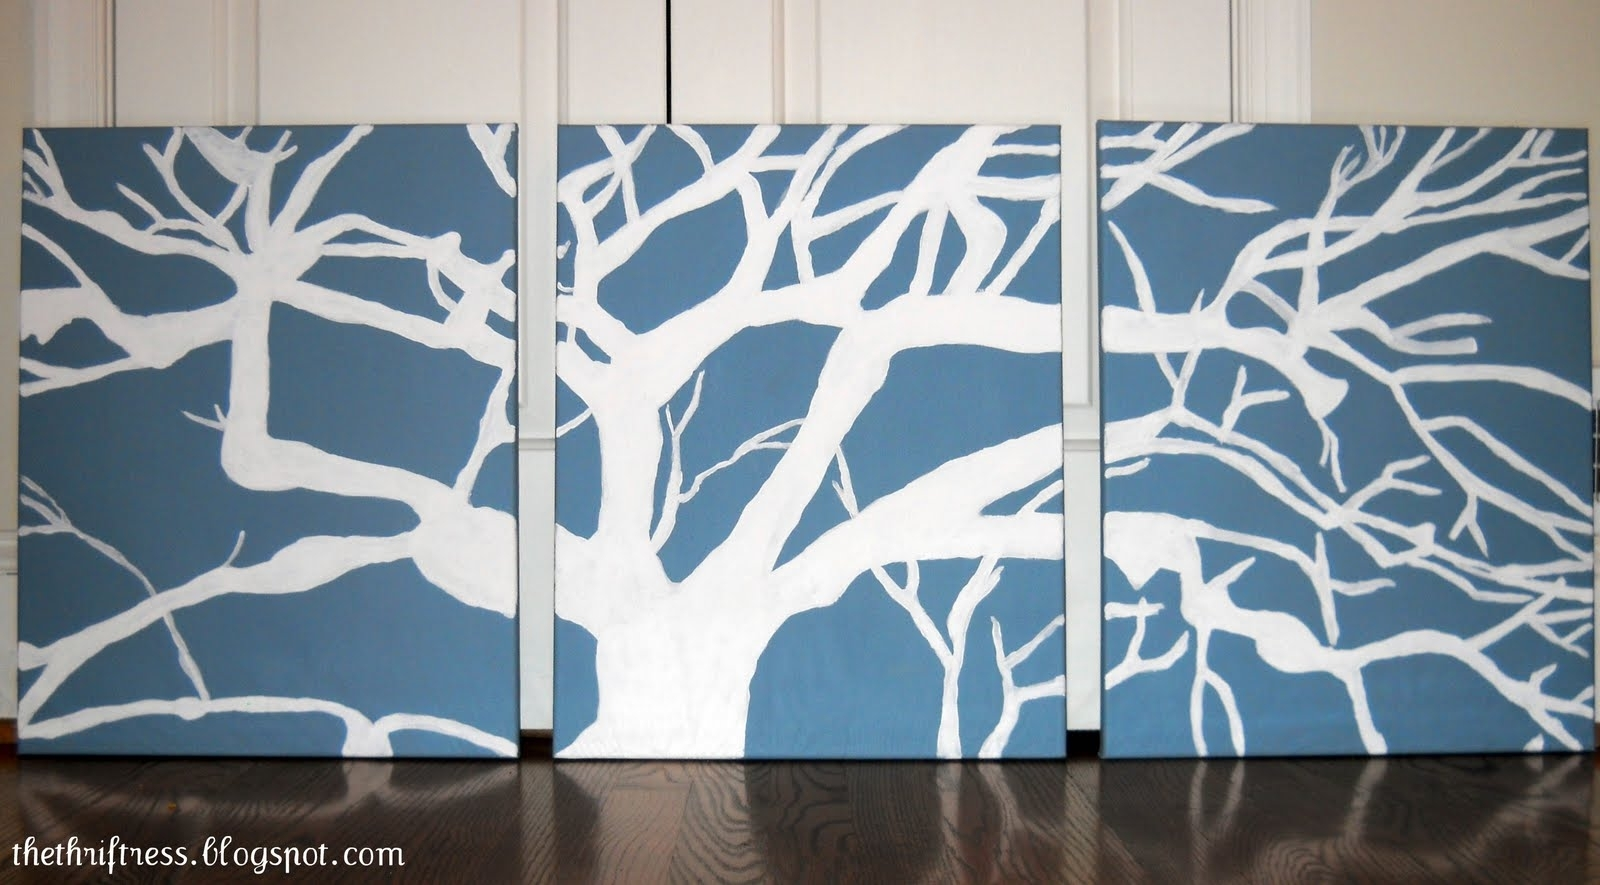 Diy Wall Art Stencils Paint Fabric – Dma Homes | #37854 For Most Recently Released Fabric Panels For Wall Art (View 3 of 15)